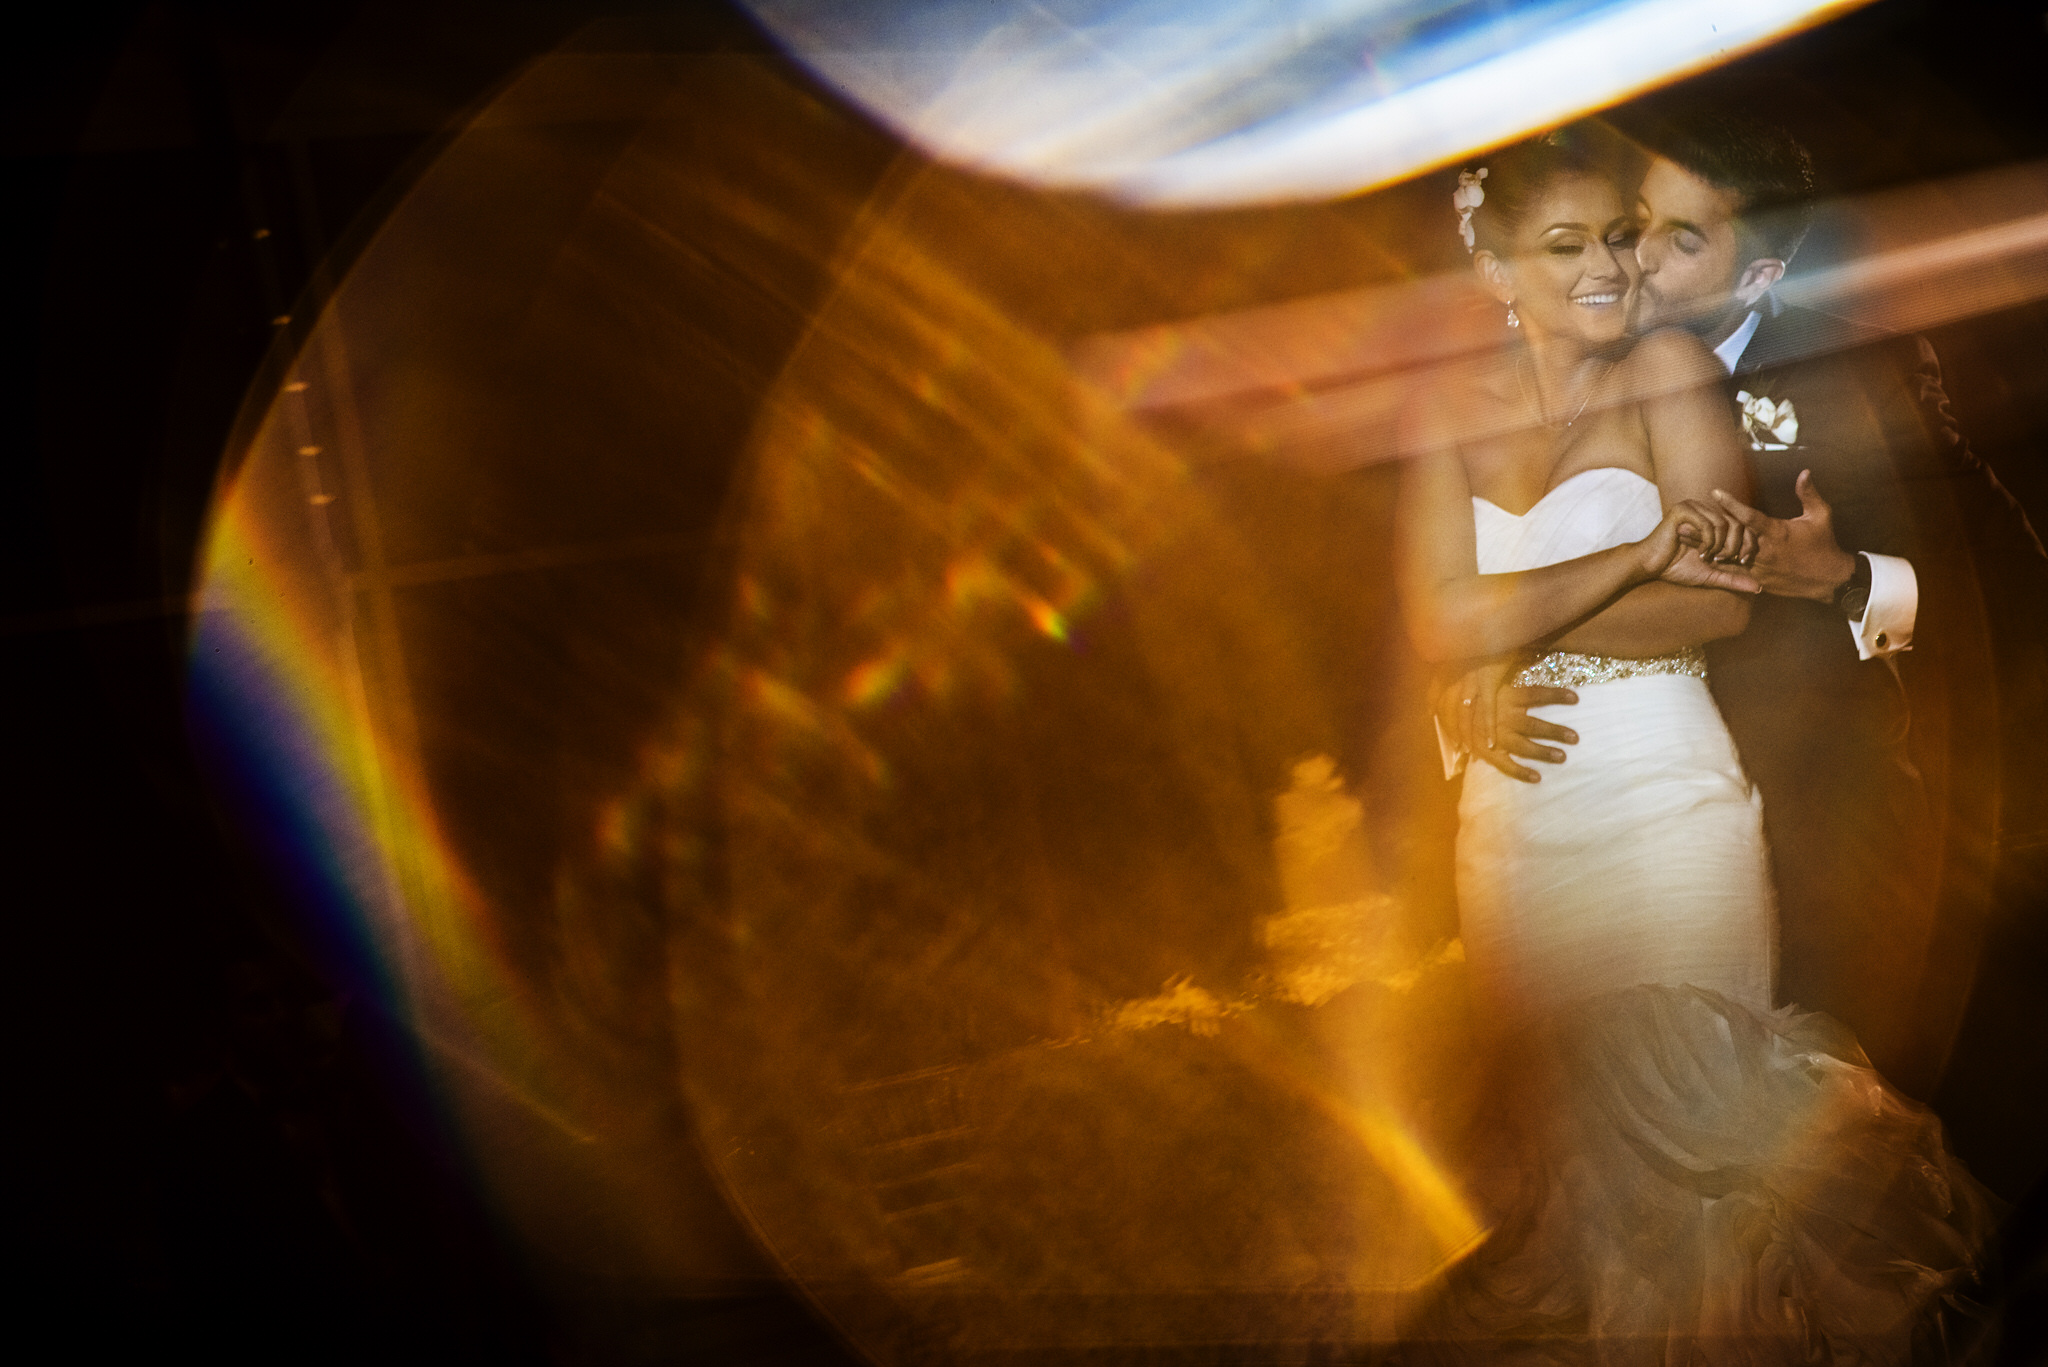 Roshie and Mehrad's wedding at Silvercreek Valley Country Club in San Jose, CA